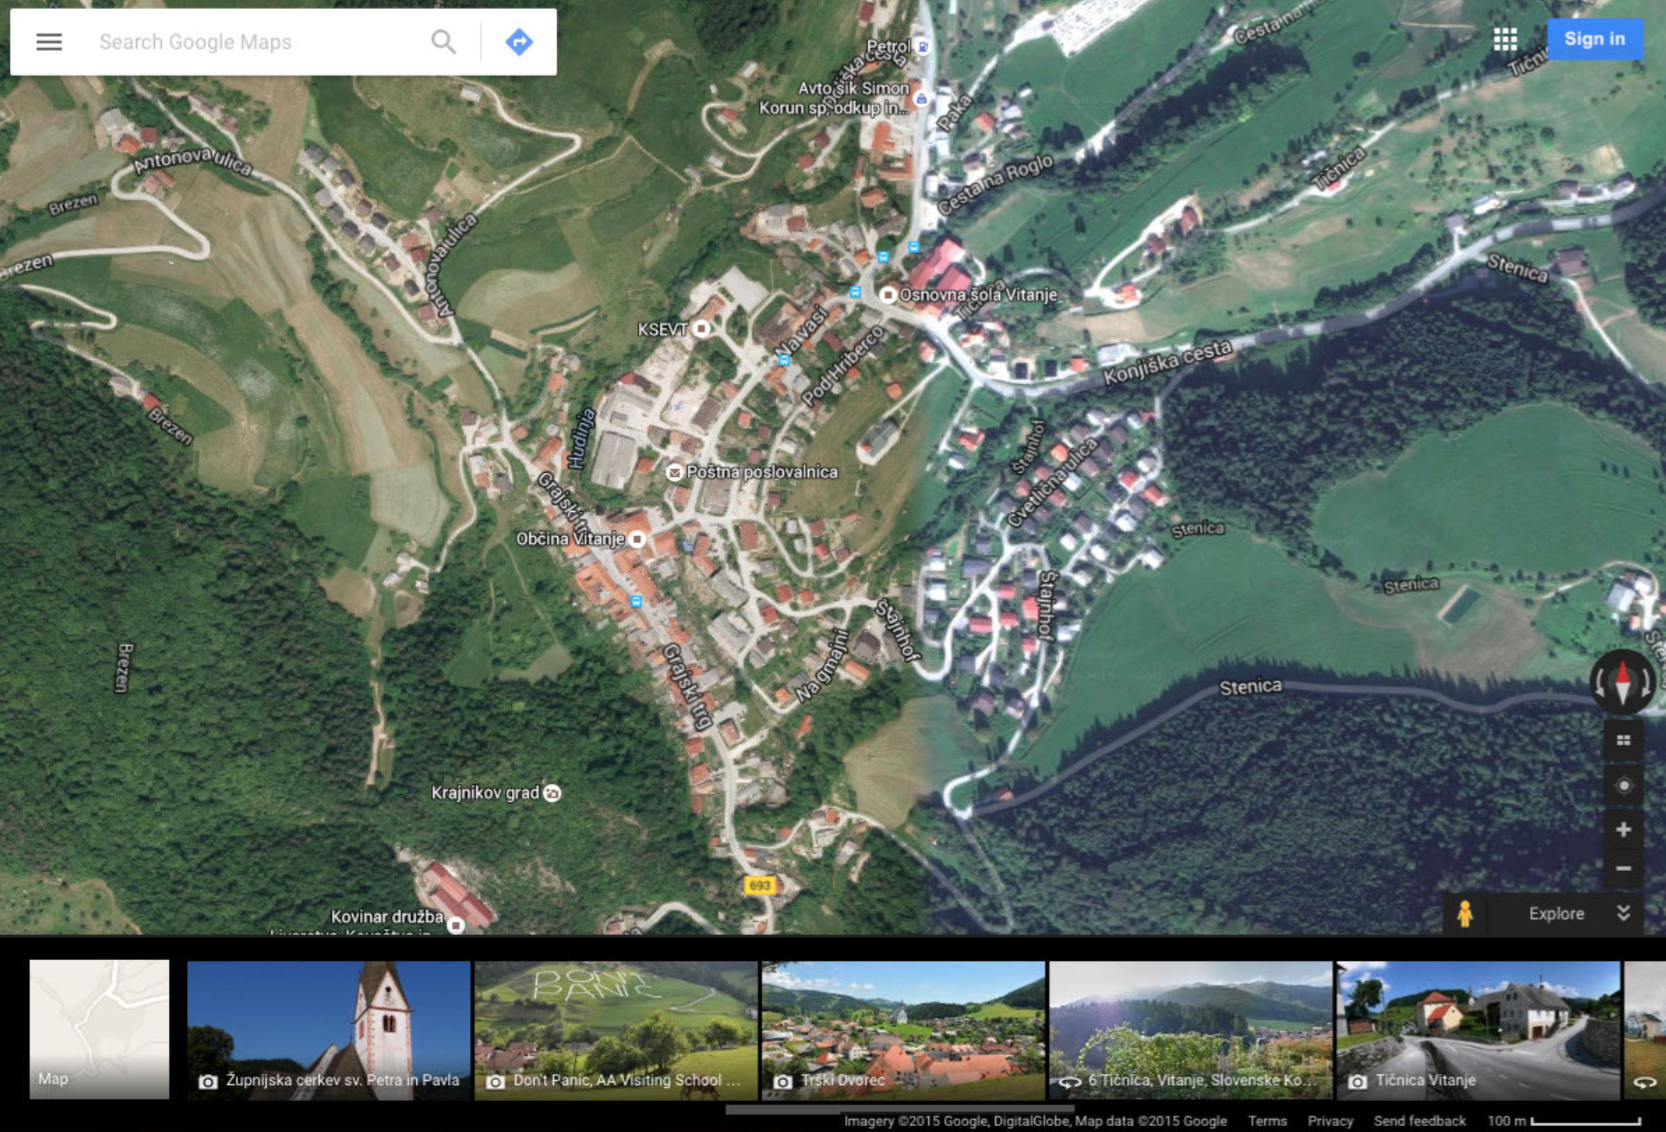 The small town of Vitanje has been implemented with the building and institution of KSEVT (Cultural Centre of European Space Technologies) in 2012. KSEVT has changed the life of Vitanje quite radically and placed Vitanje on the global map... But, until today, the digital imagery of Google Maps satellite photo database has not been updated and still shows the old local community building that was standing on the place of KSEVT. We took this opportunity to run a project of producing the updated orthophoto image of the area of Vitanje with KSEVT.